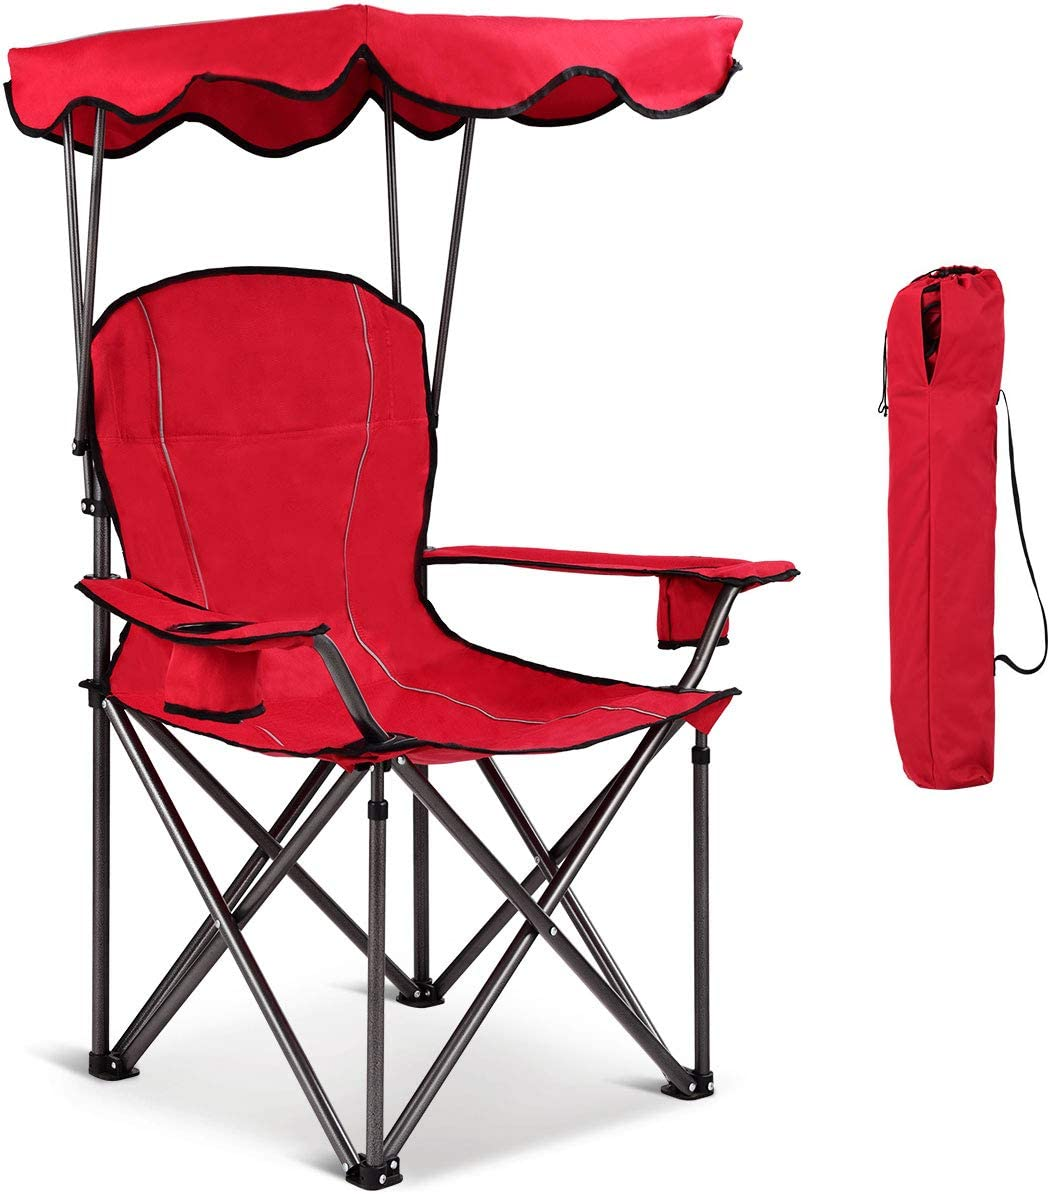 Goplus Outdoor Canopy Chair, Heavy Duty Camping Chair Durable Folding Seat w Cup Holder and Carry Bag Red